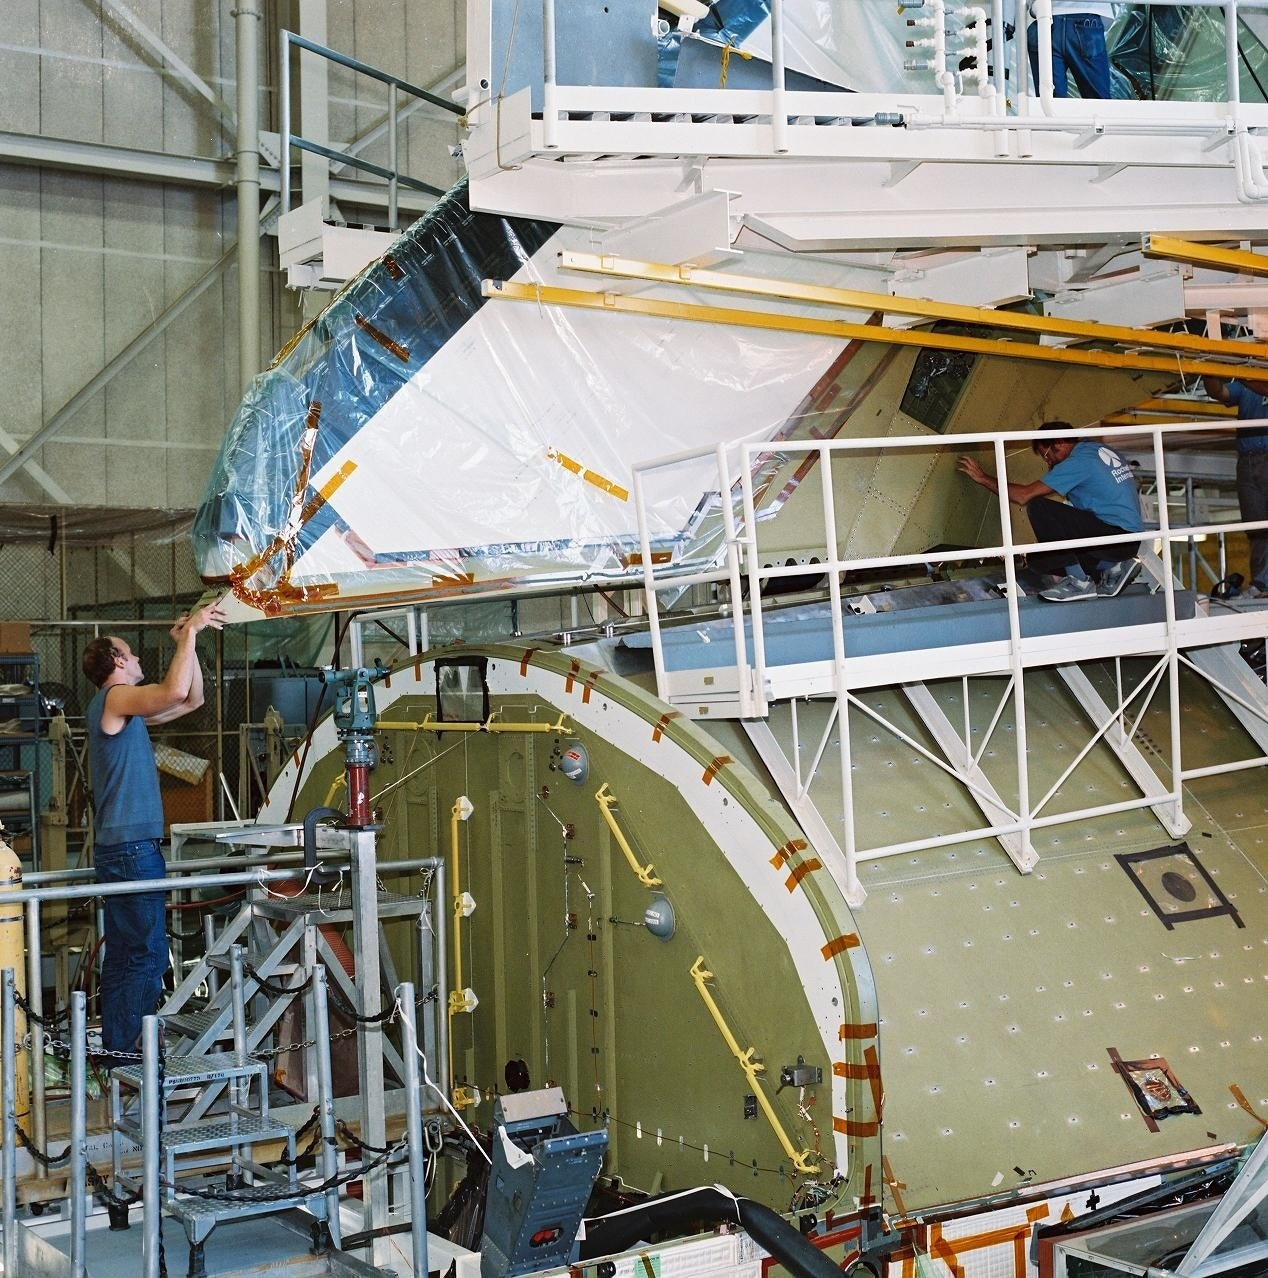 space shuttles were built where - photo #25